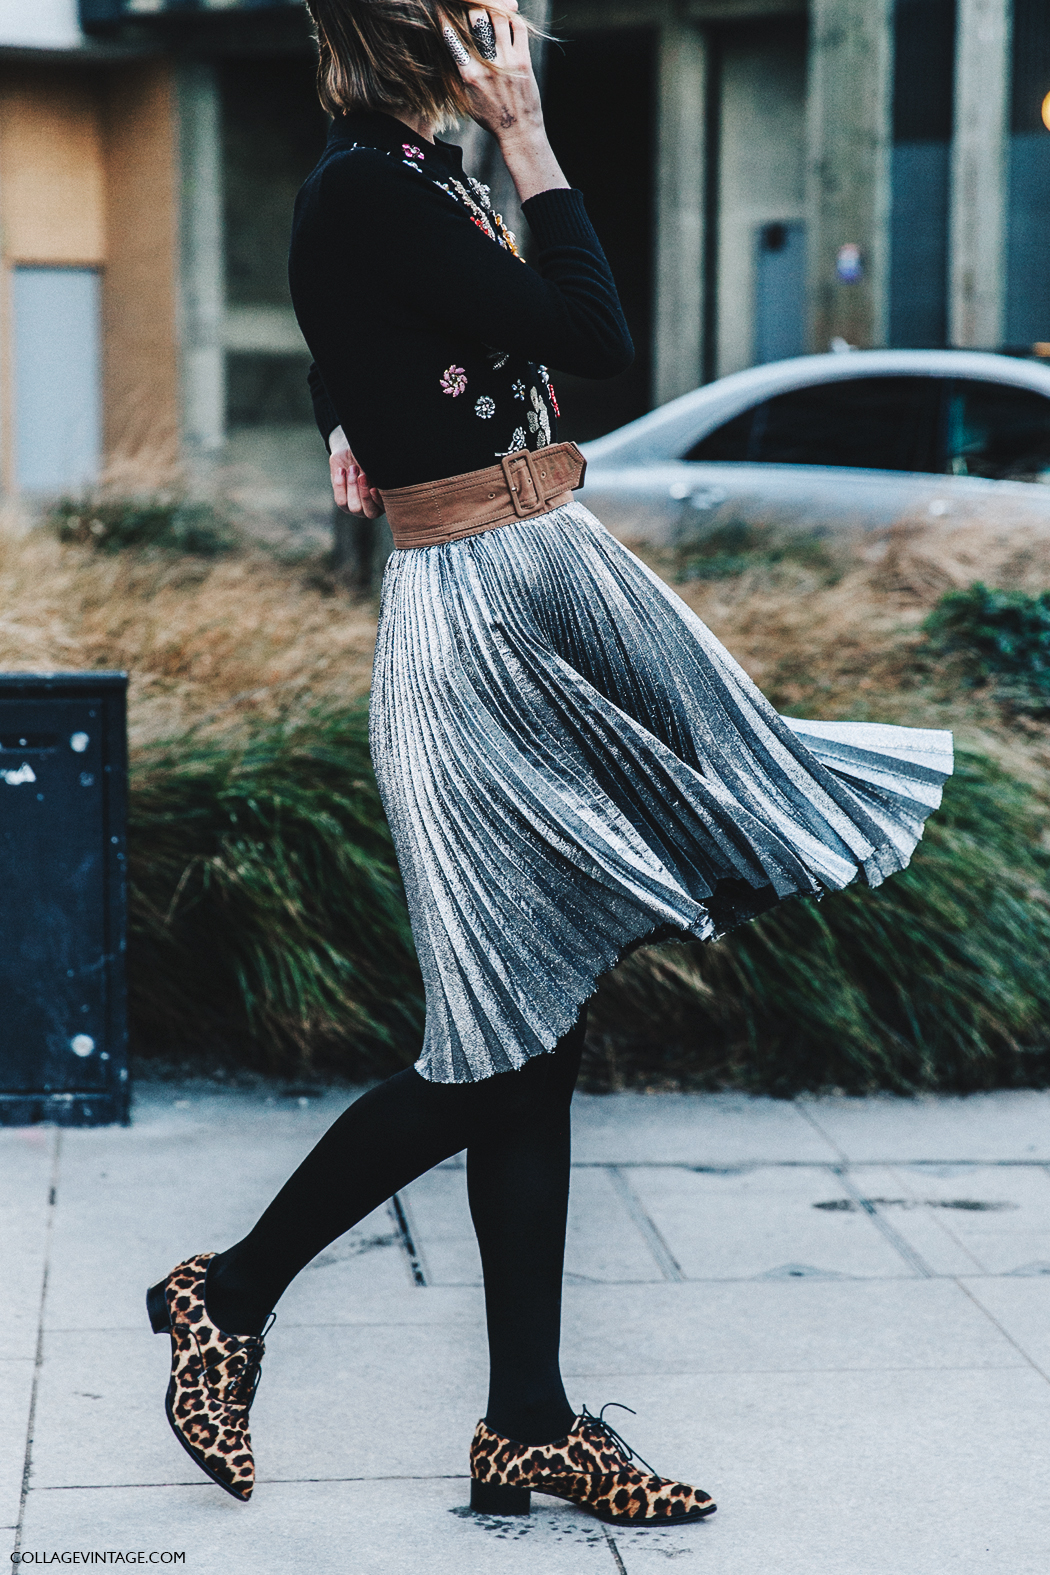 LFW-London_Fashion_Week_Fall_16-Street_Style-Collage_Vintage-Anya_Ziurova-Metallic_Skirt-Pleated_Skirt-1